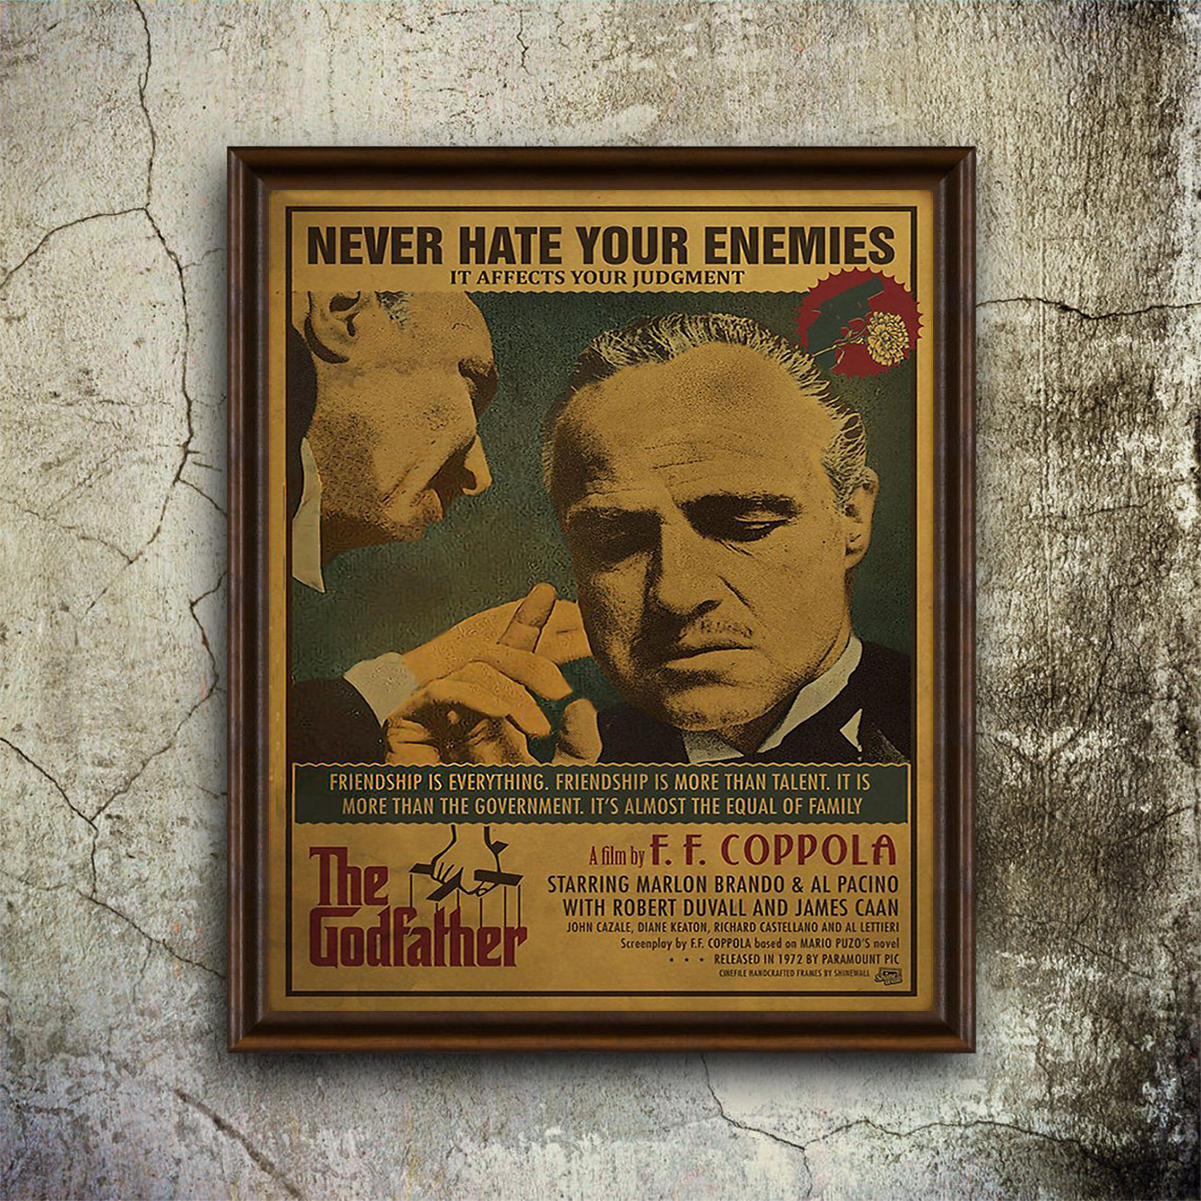 The godfather never hate your enemies it affects your judgment poster A1